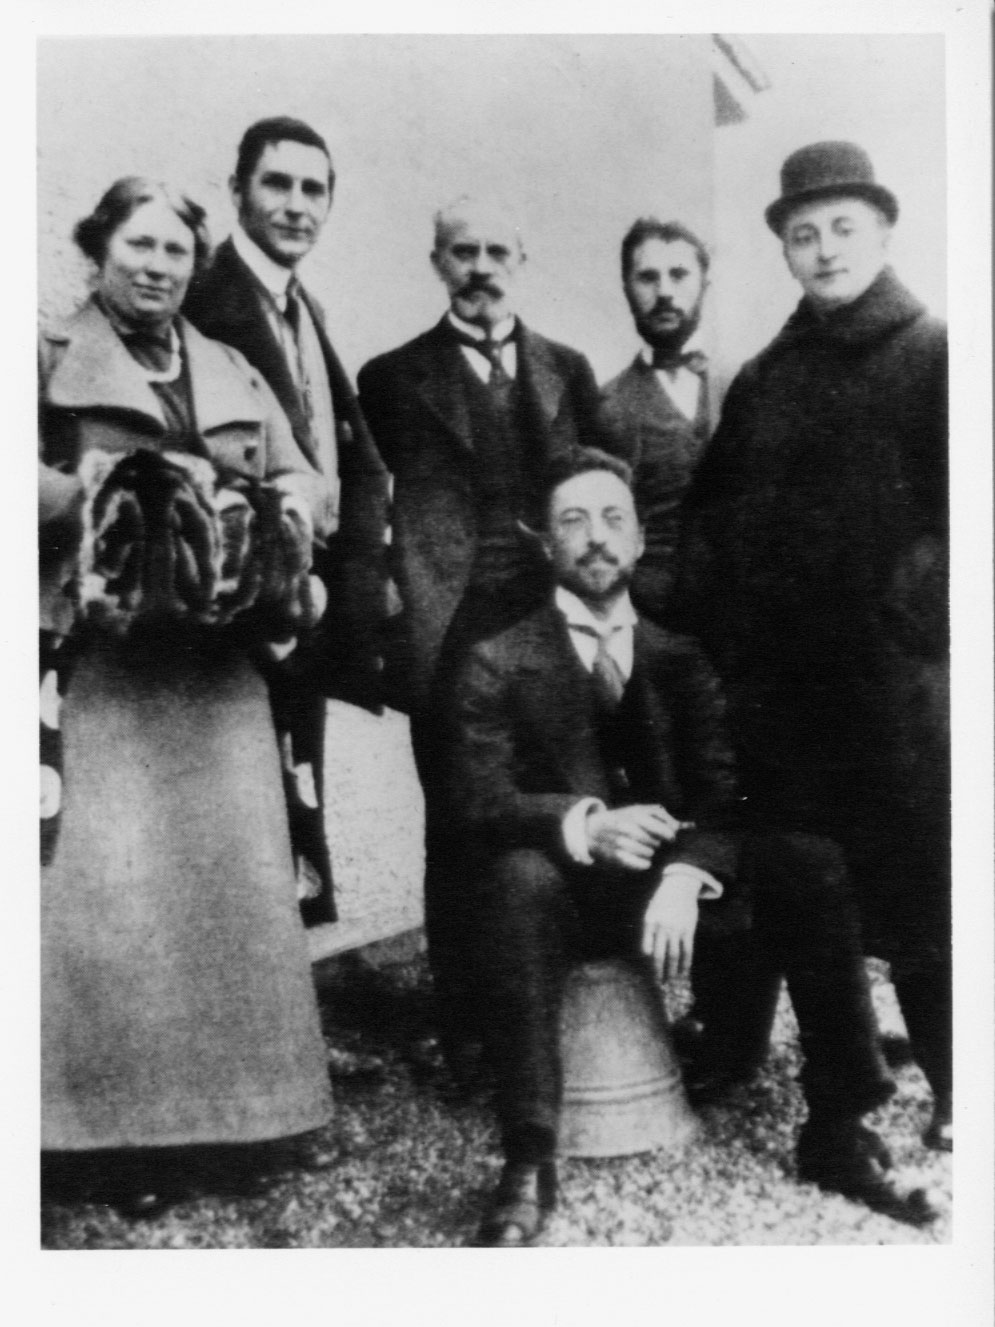 Munich, 1911: Wassily Kandinsky, seated, Thomas de Hartmann, far right; also pictured, left to right: Maria Marc, Franz Marc, Bernhard Koehler, Heinrich Campendonk. Courtesy The Thomas de Hartmann Archives, Yale University Music Library.